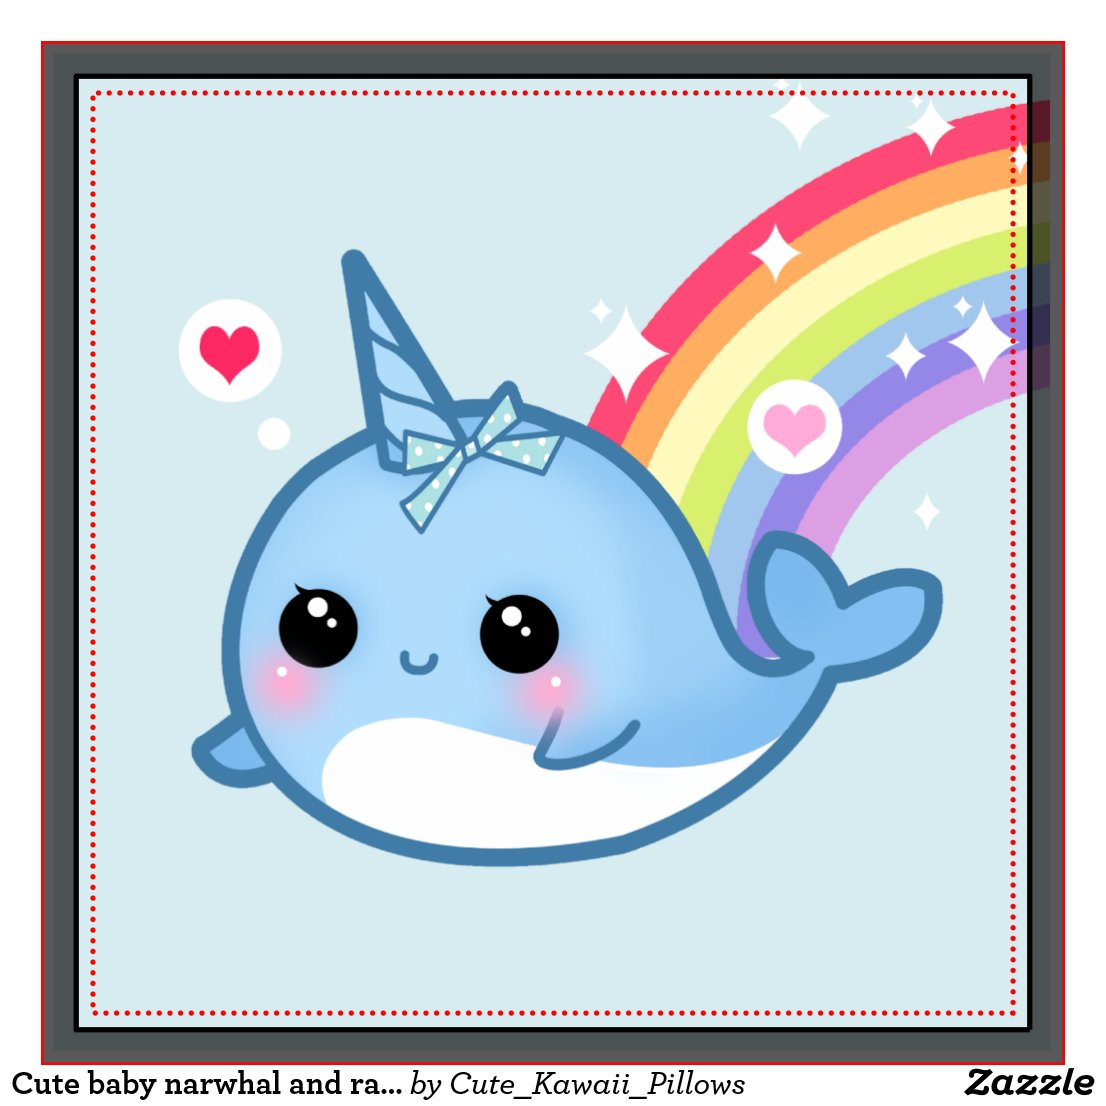 Cute baby narwhal - Cute narwhal wallpaper ...